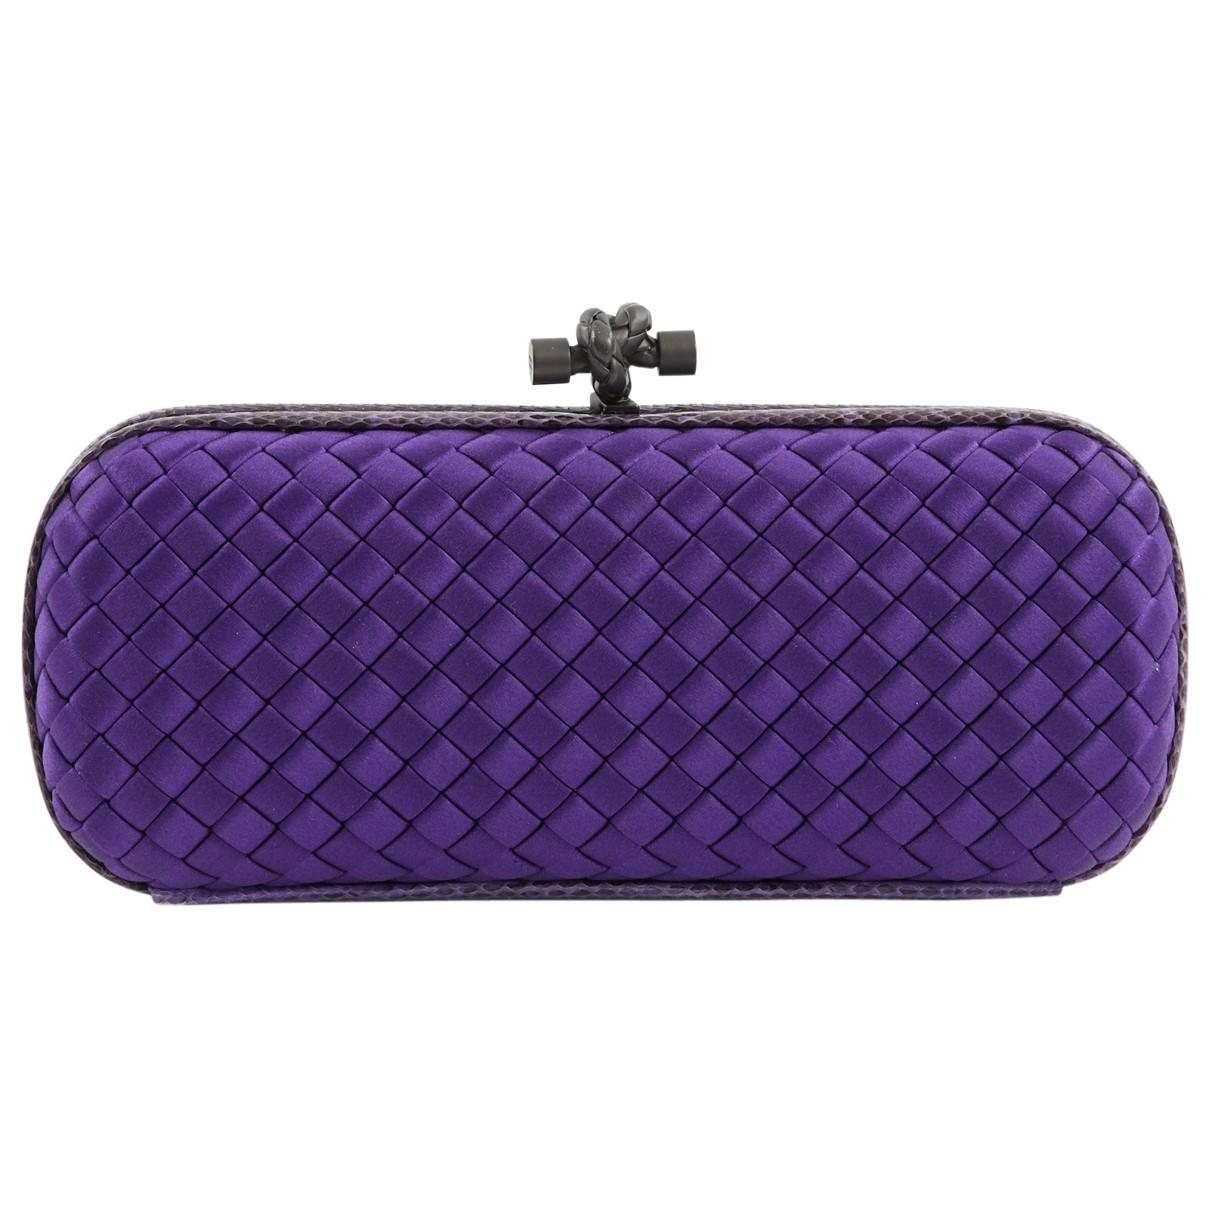 270d1df74c37 Lyst - Bottega Veneta Pre-owned Pochette Knot Clutch Bag in Purple